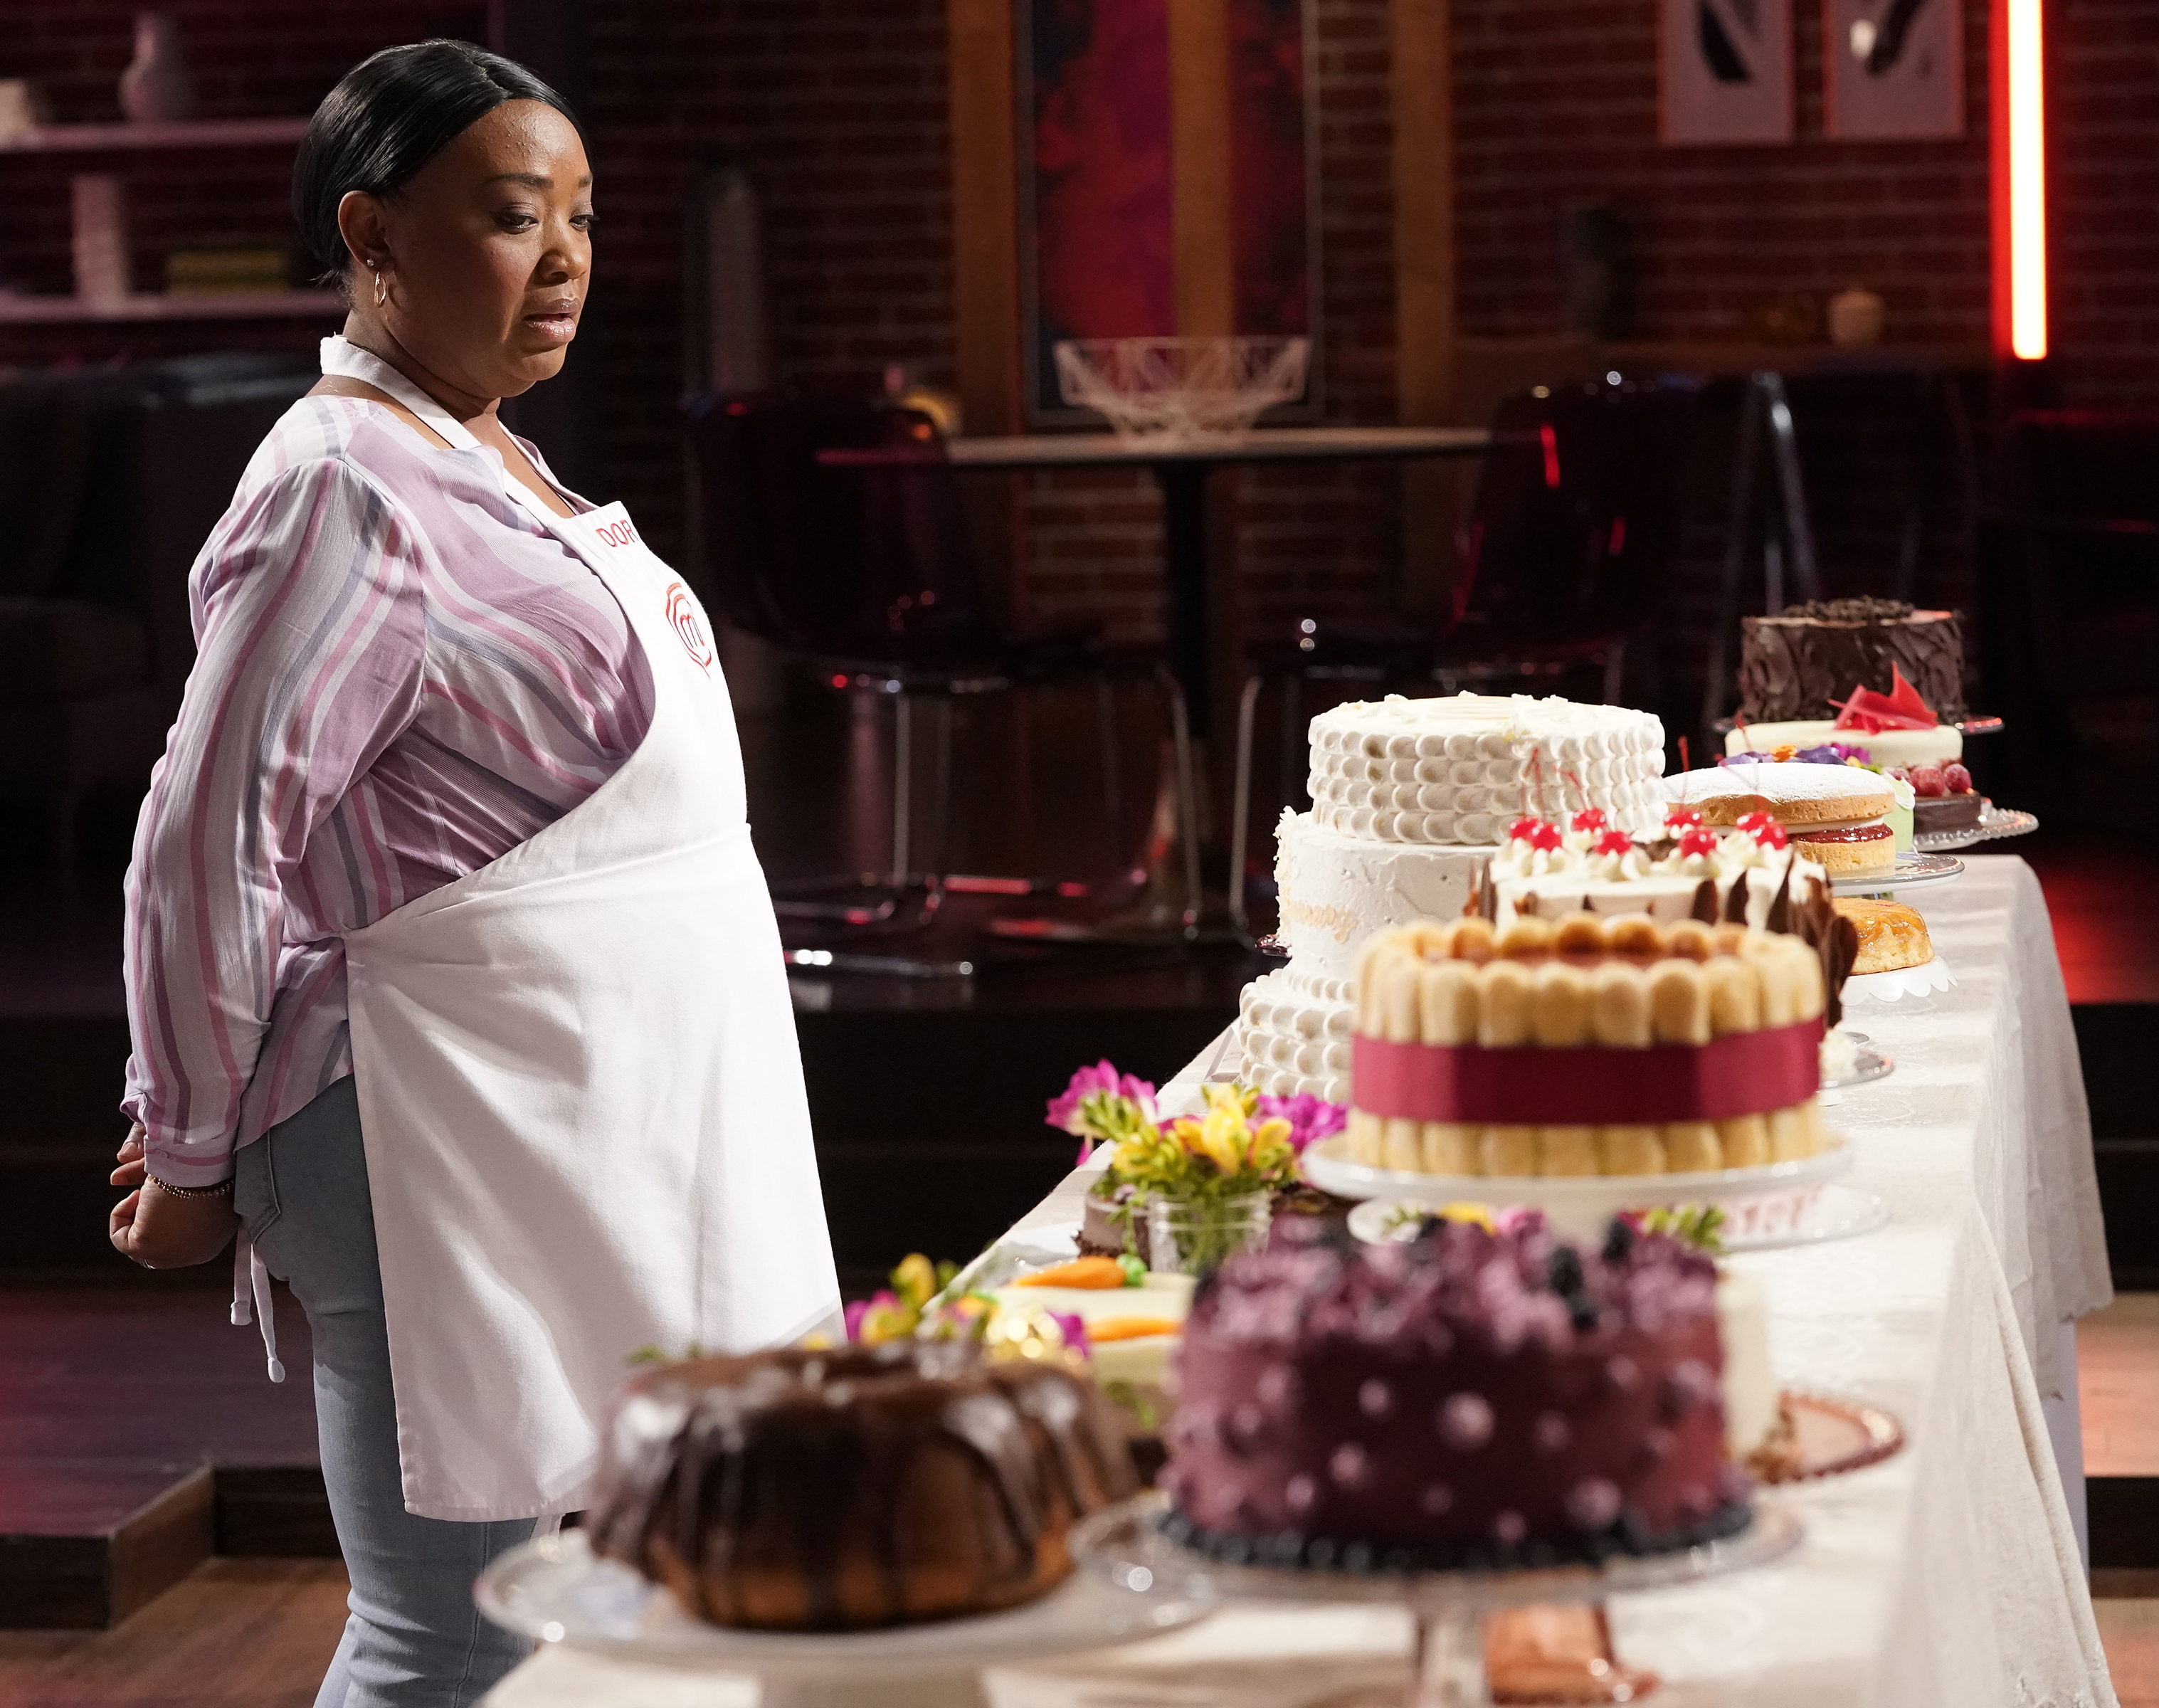 MasterChef Season 10 episode 14 review: Let Them Eat Cake